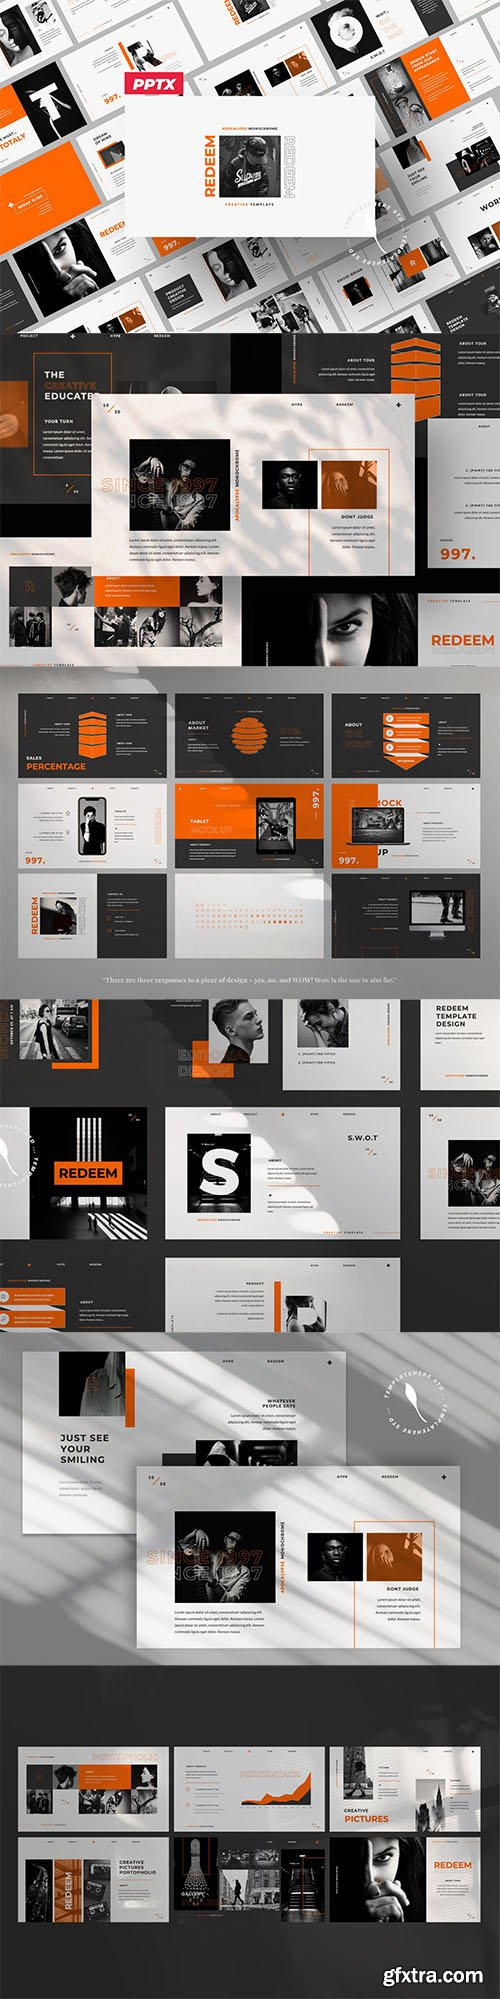 Redeem Powerpoint, Keynote and Google Slides Template